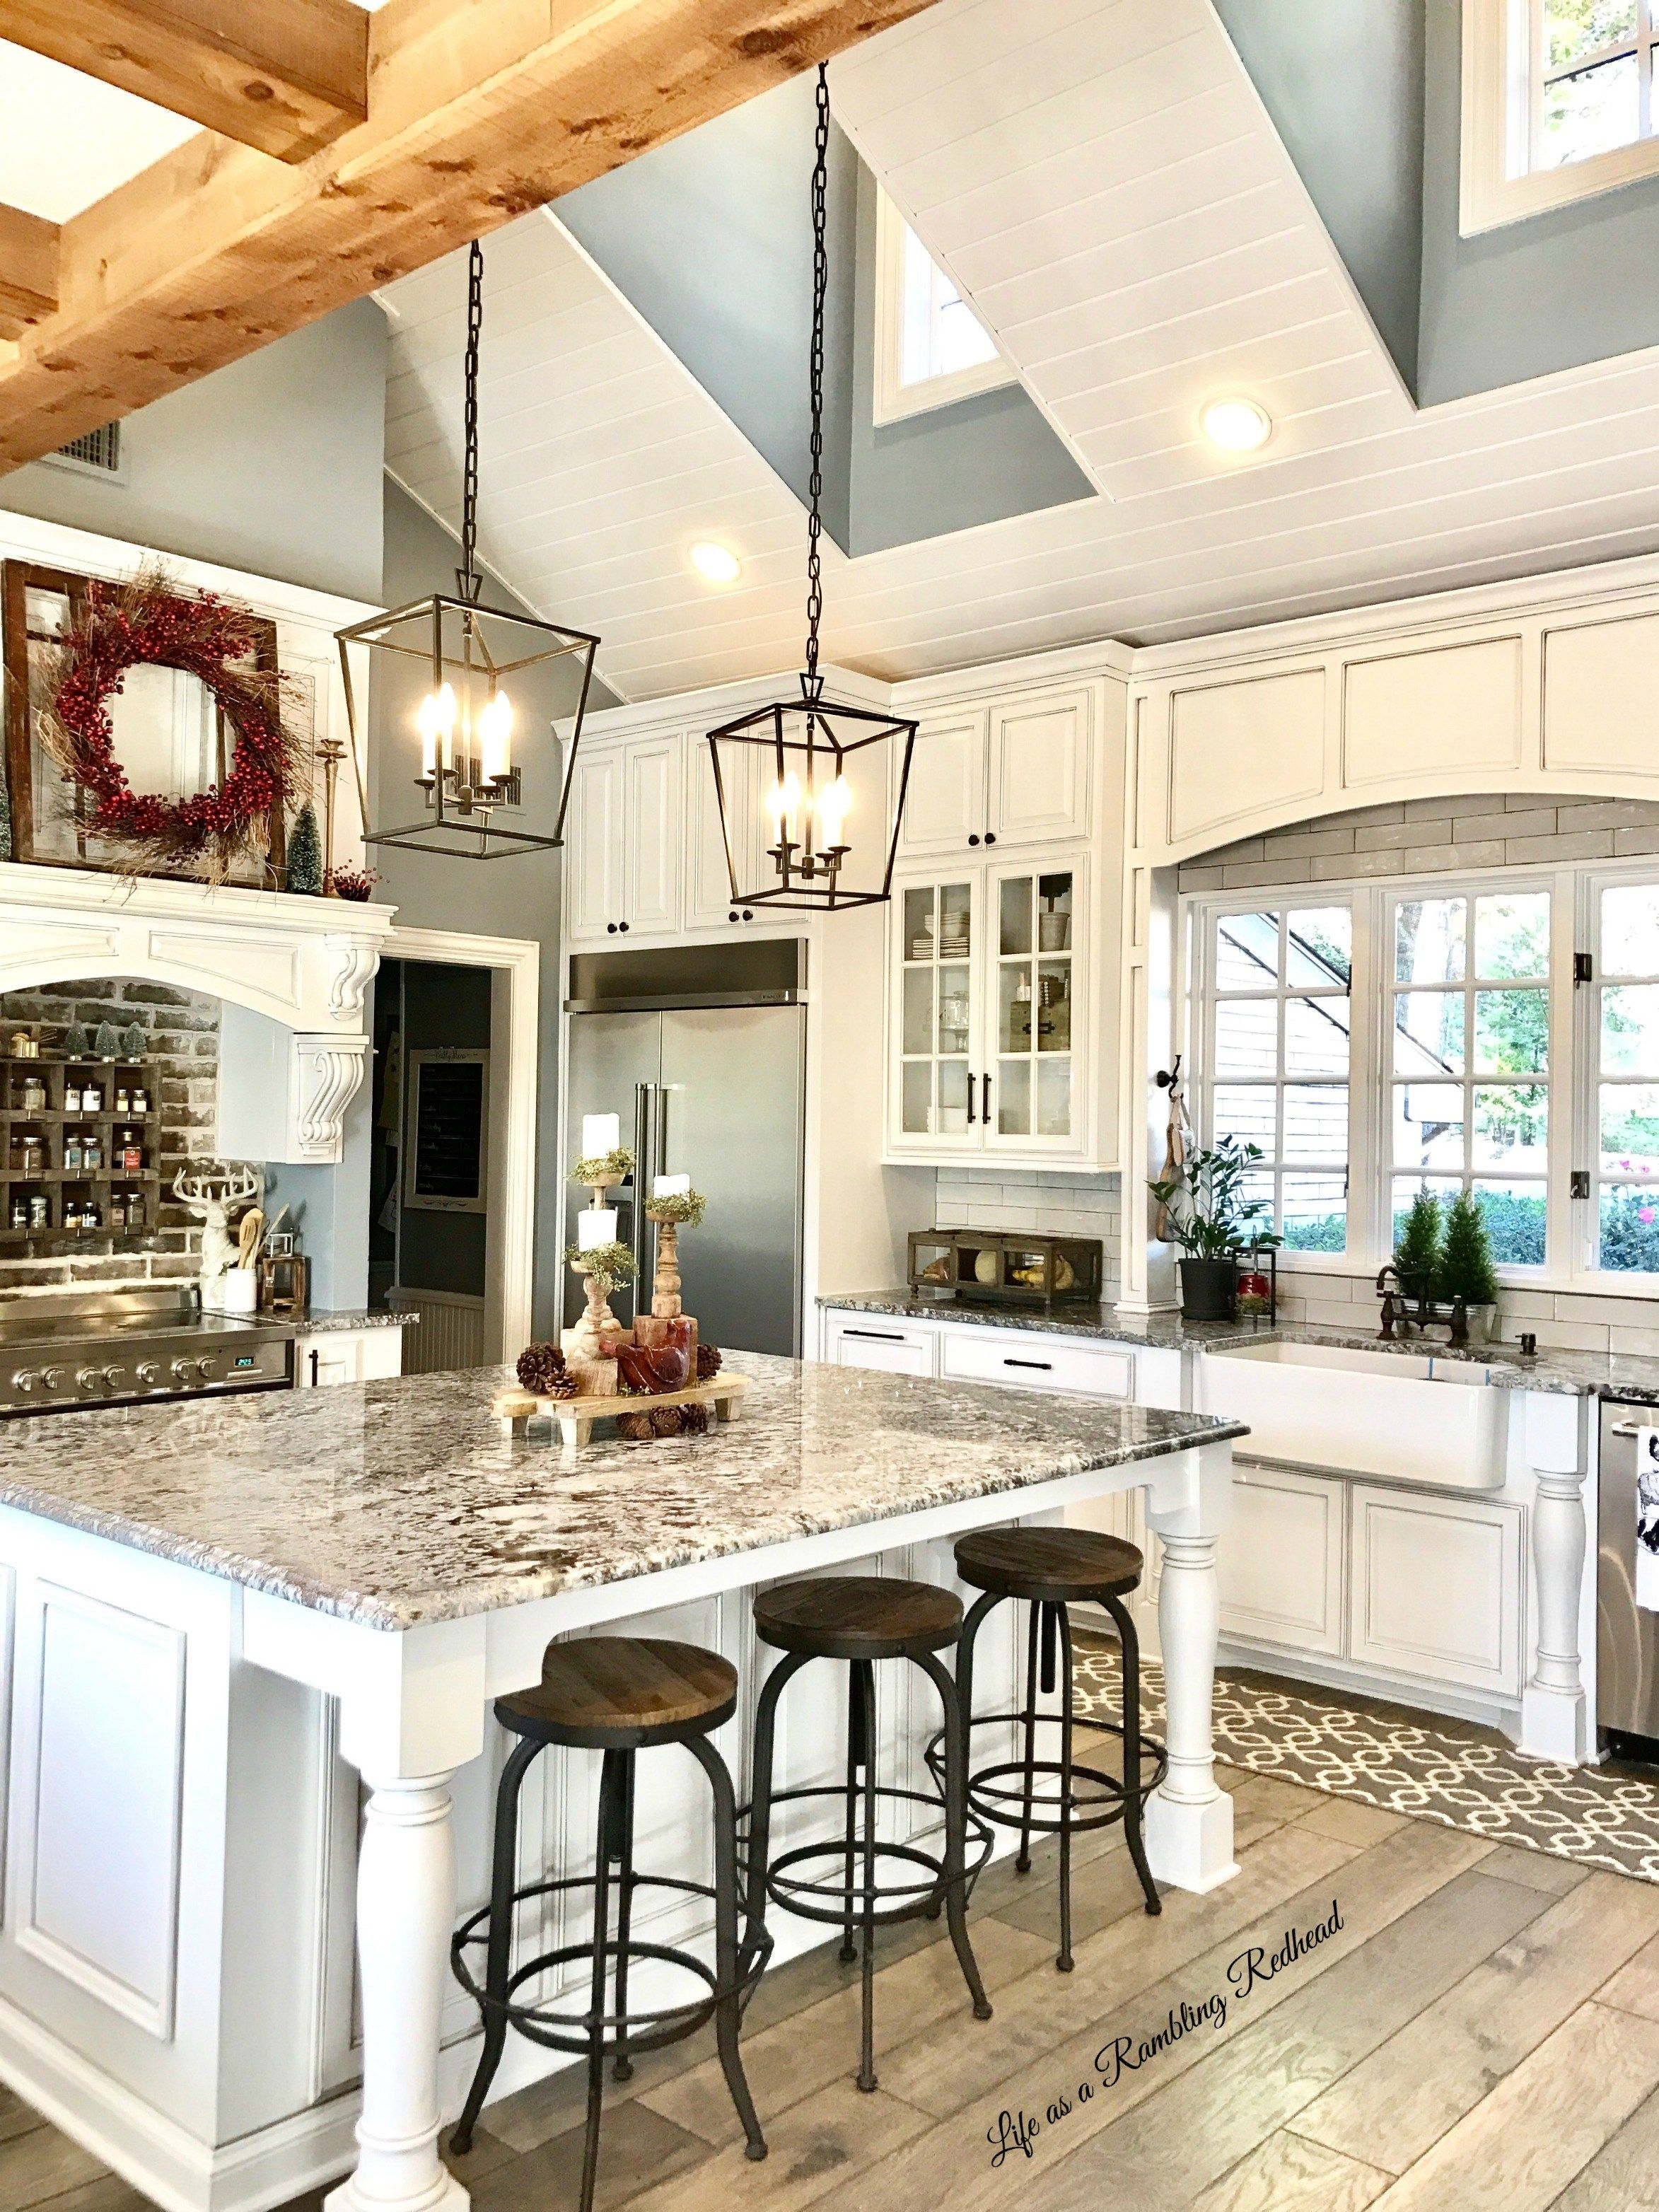 Stunning before and after home renovation photos rustic dream kitchenswhite kitchensbeautiful kitchenscabin houses interiorbeautiful also farmhouse rh pinterest